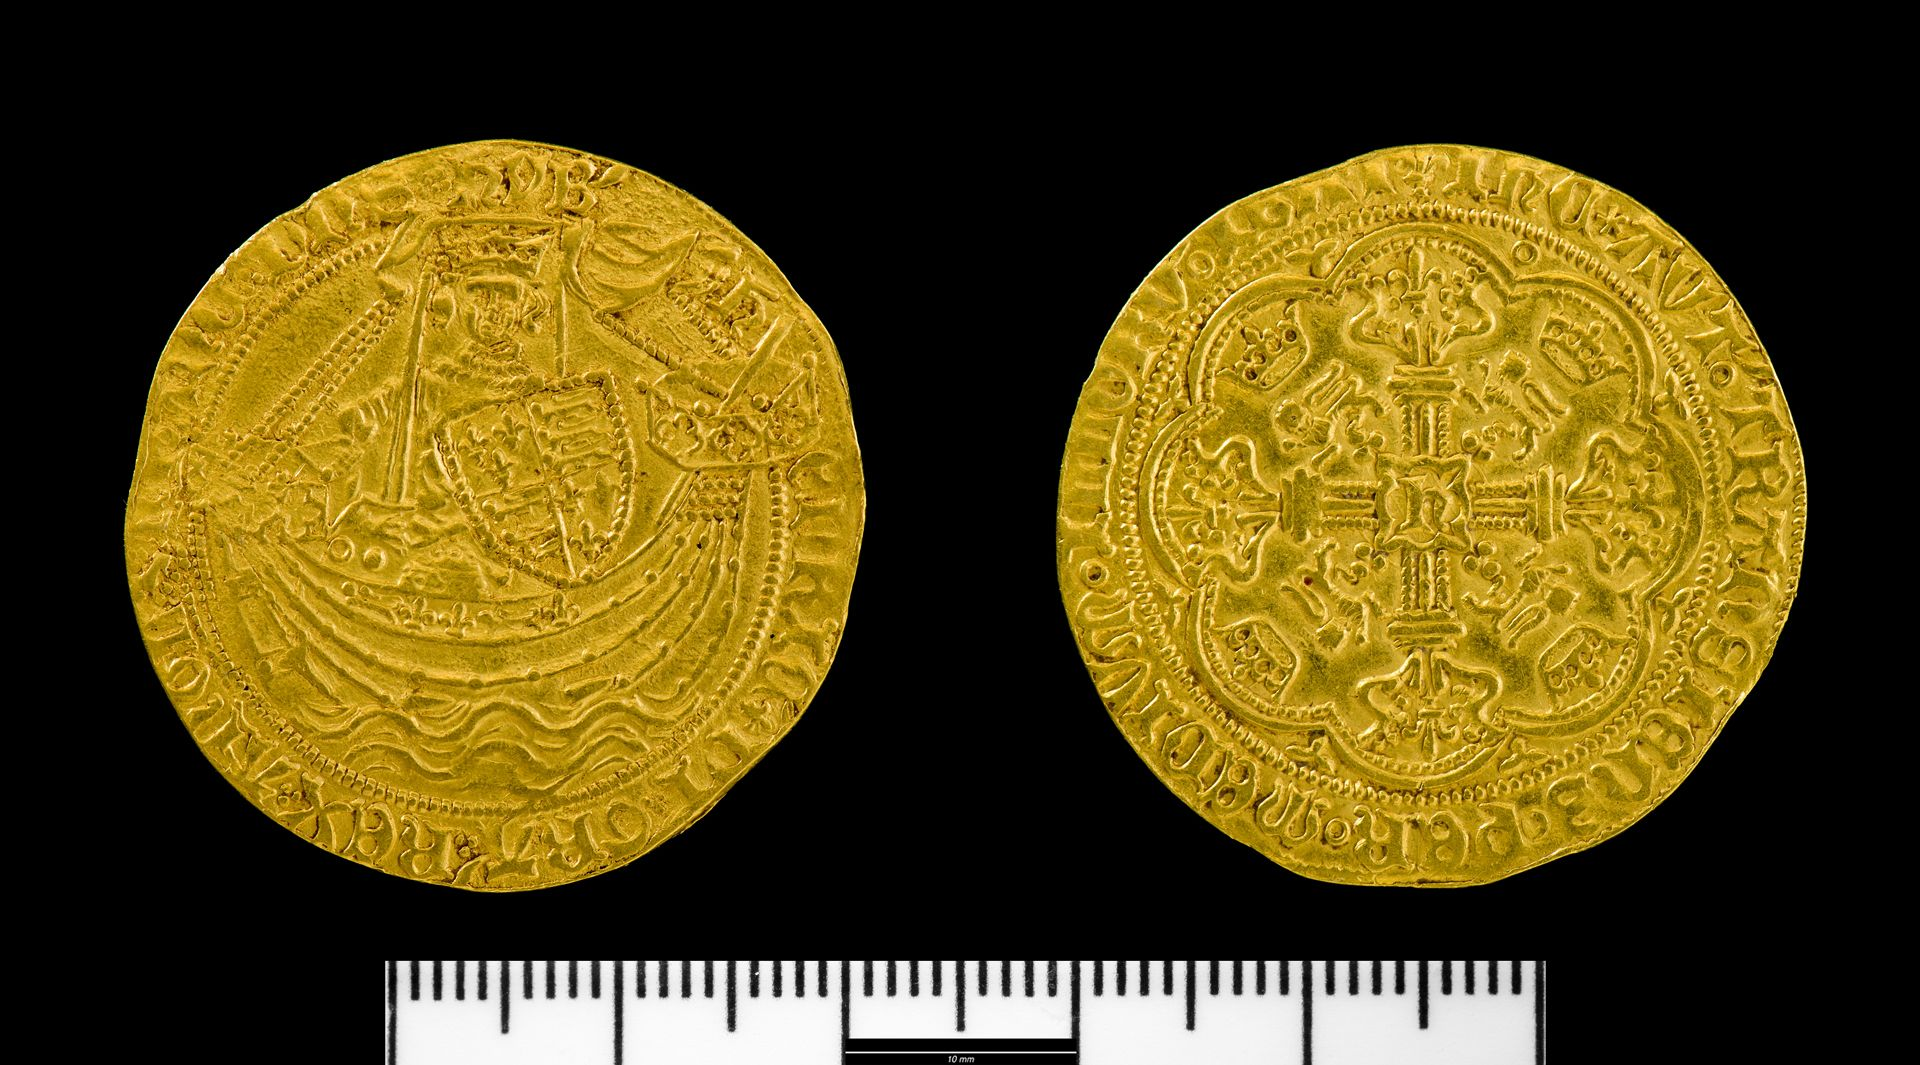 A picture of a detailed medieval gold coin, both sides shown with one side showing a detailed depiction of a ship